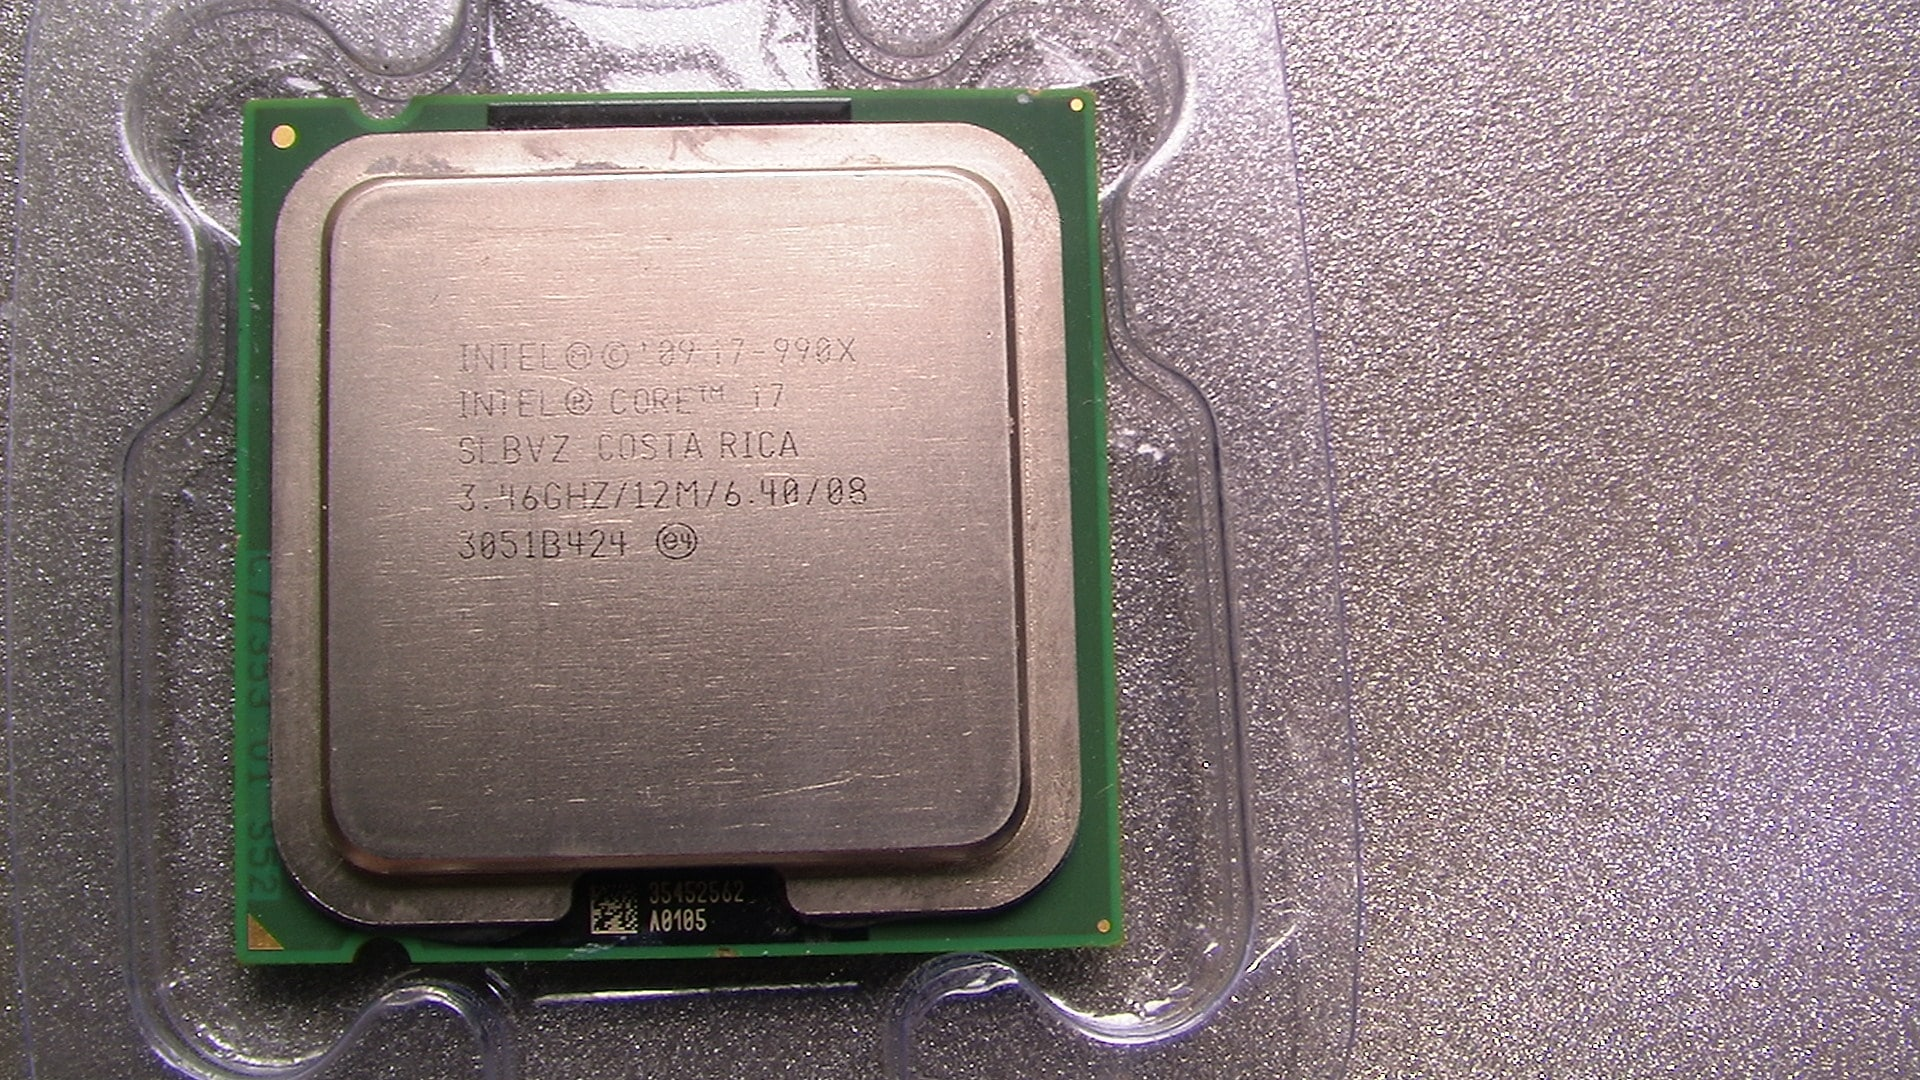 Unknowing buyer shells out for Fake i7 990X | eTeknix